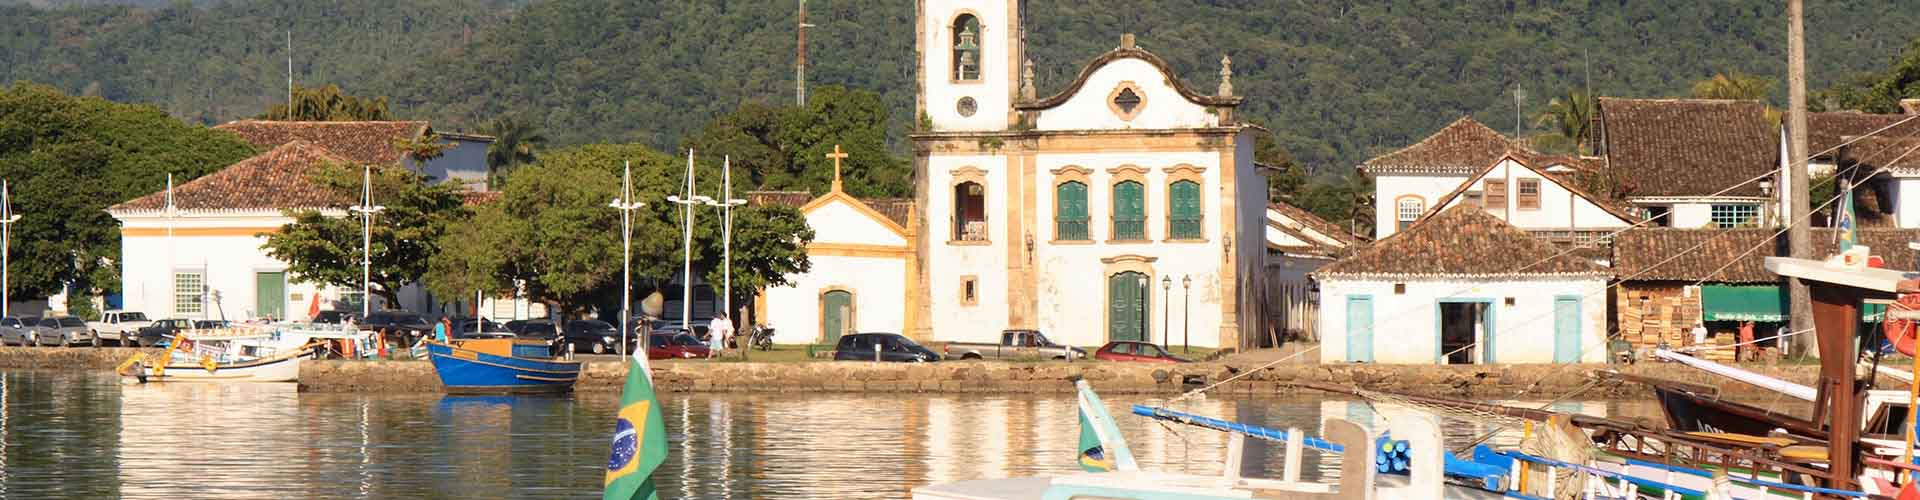 Paraty – Hostels in Paraty. Maps for Paraty, Photos and Reviews for each hostel in Paraty.